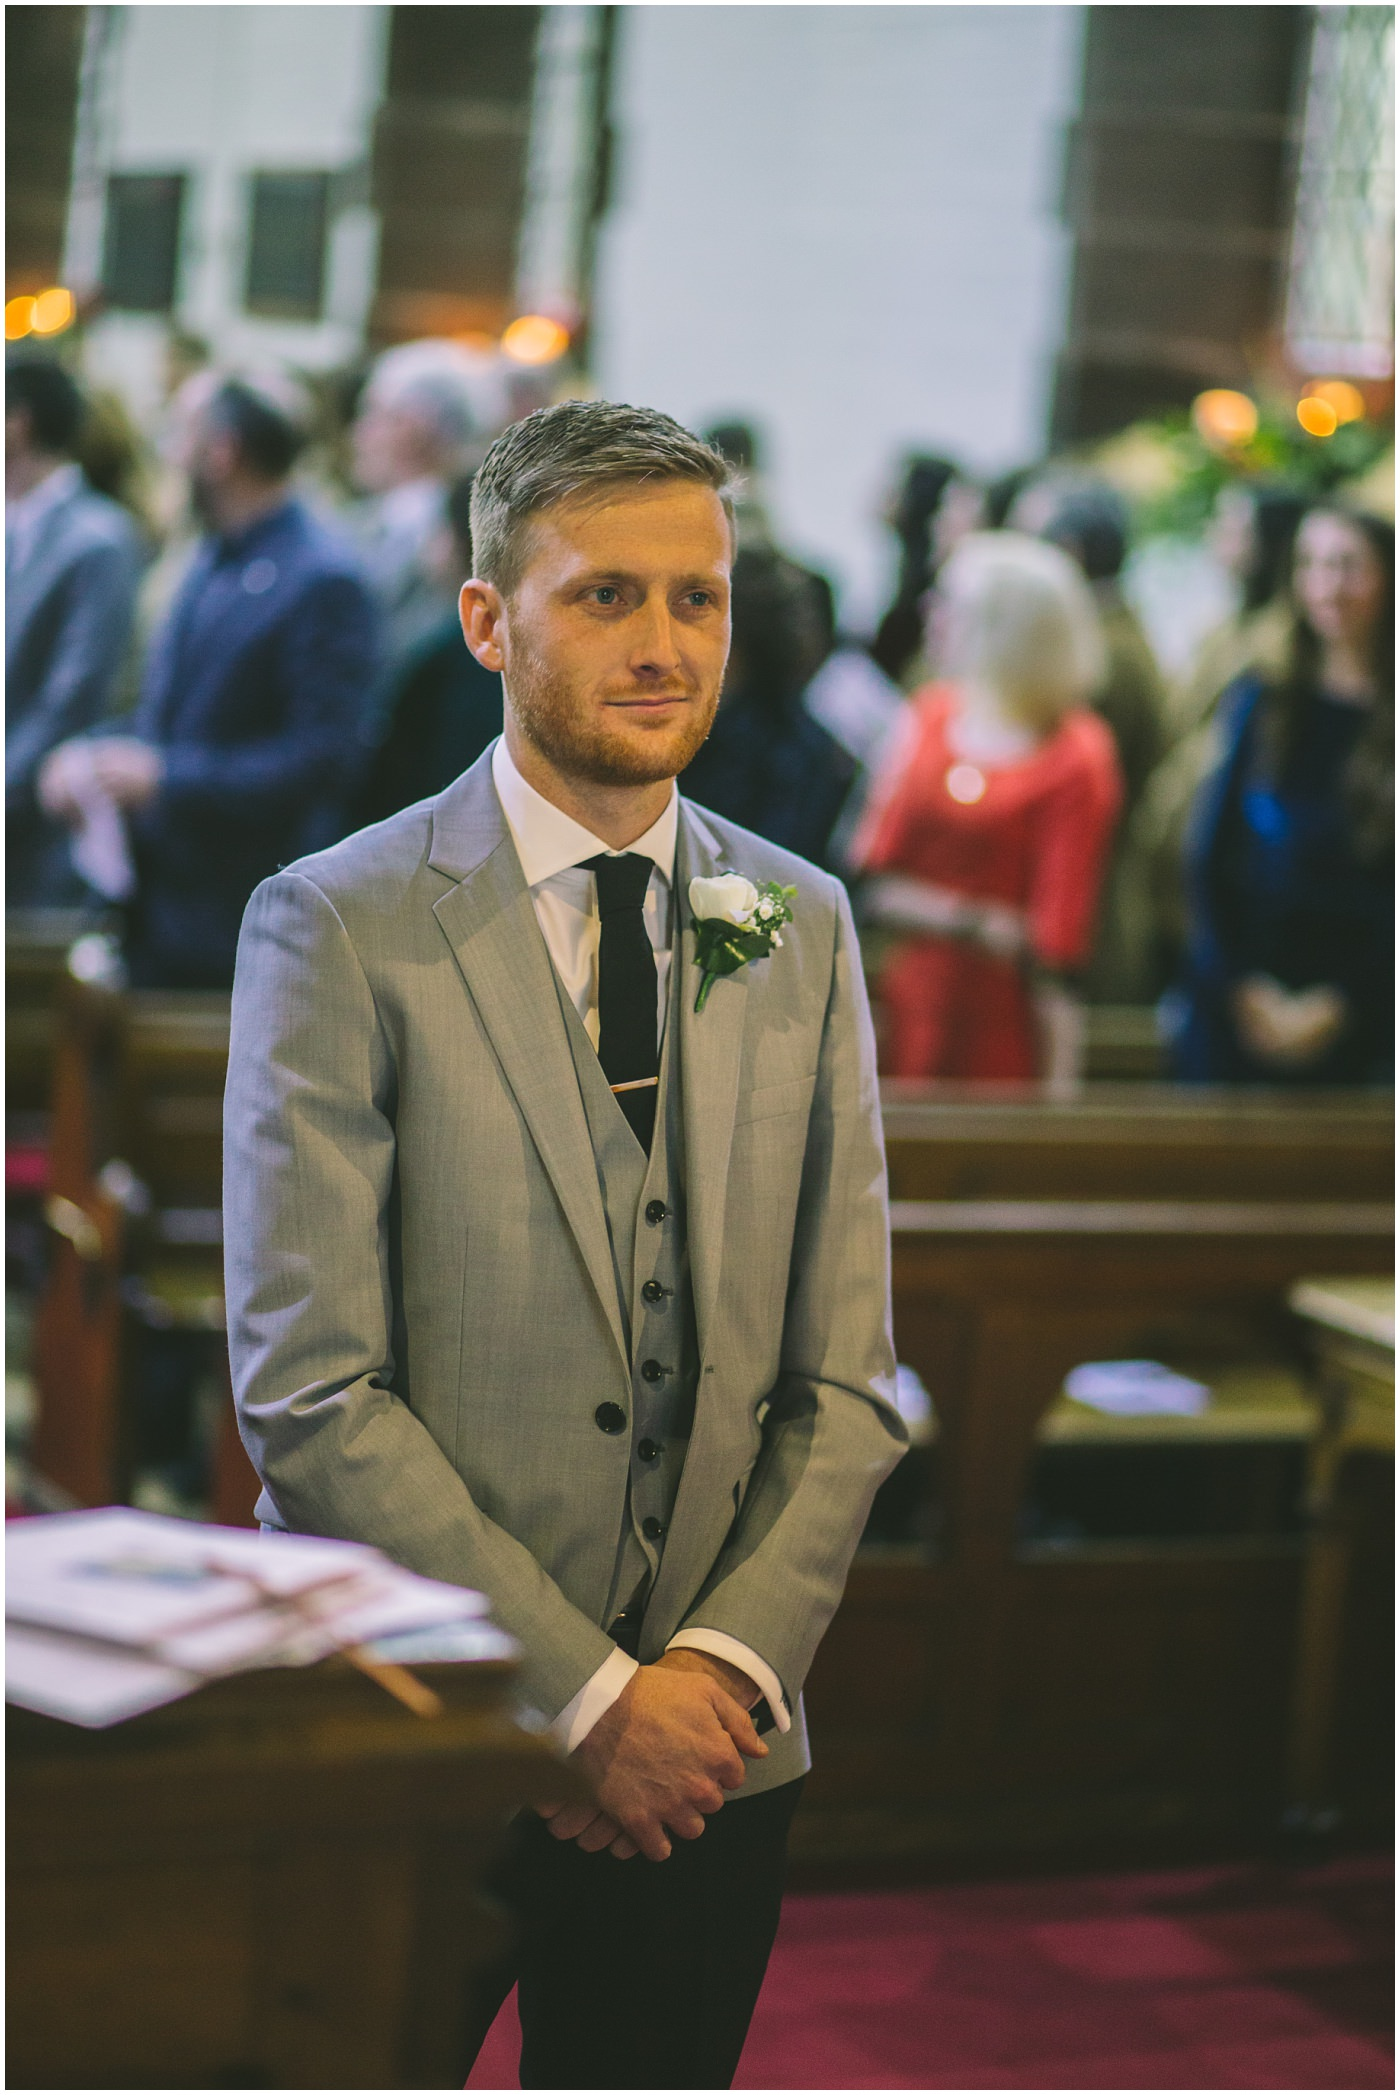 Groom awaiting the arival of his bride